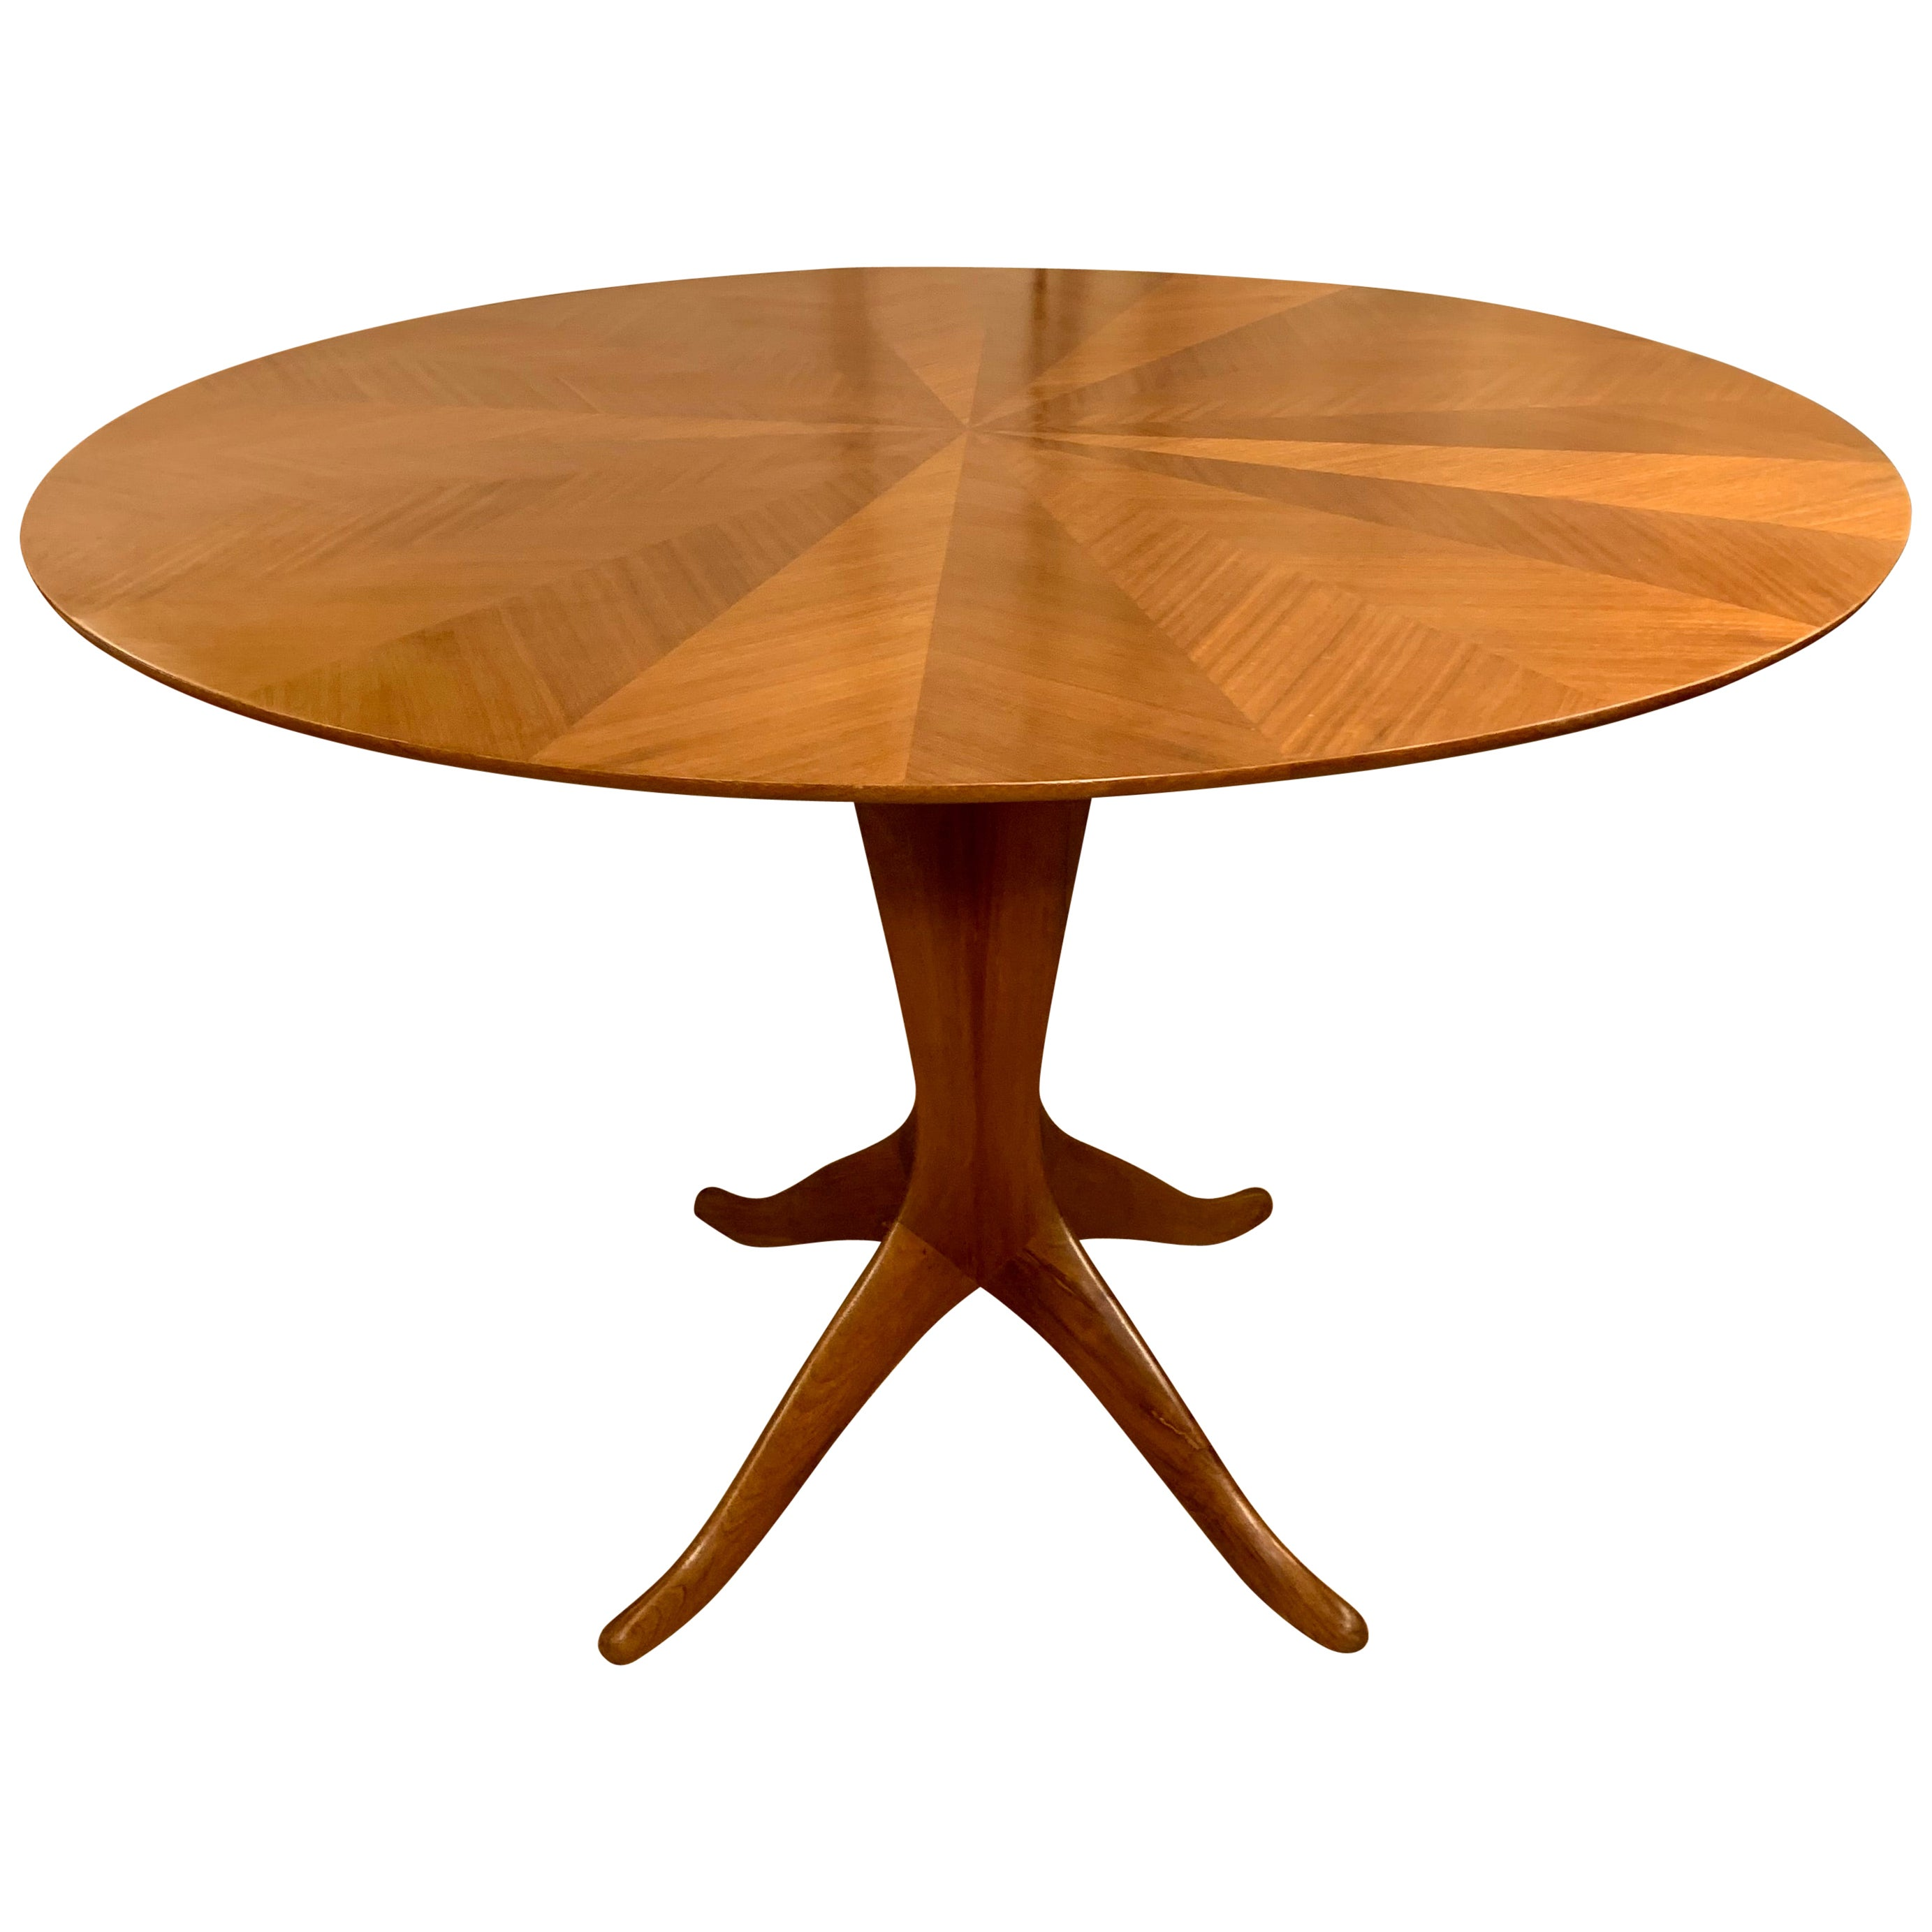 Midcentury Italian Round Dining or Center Table